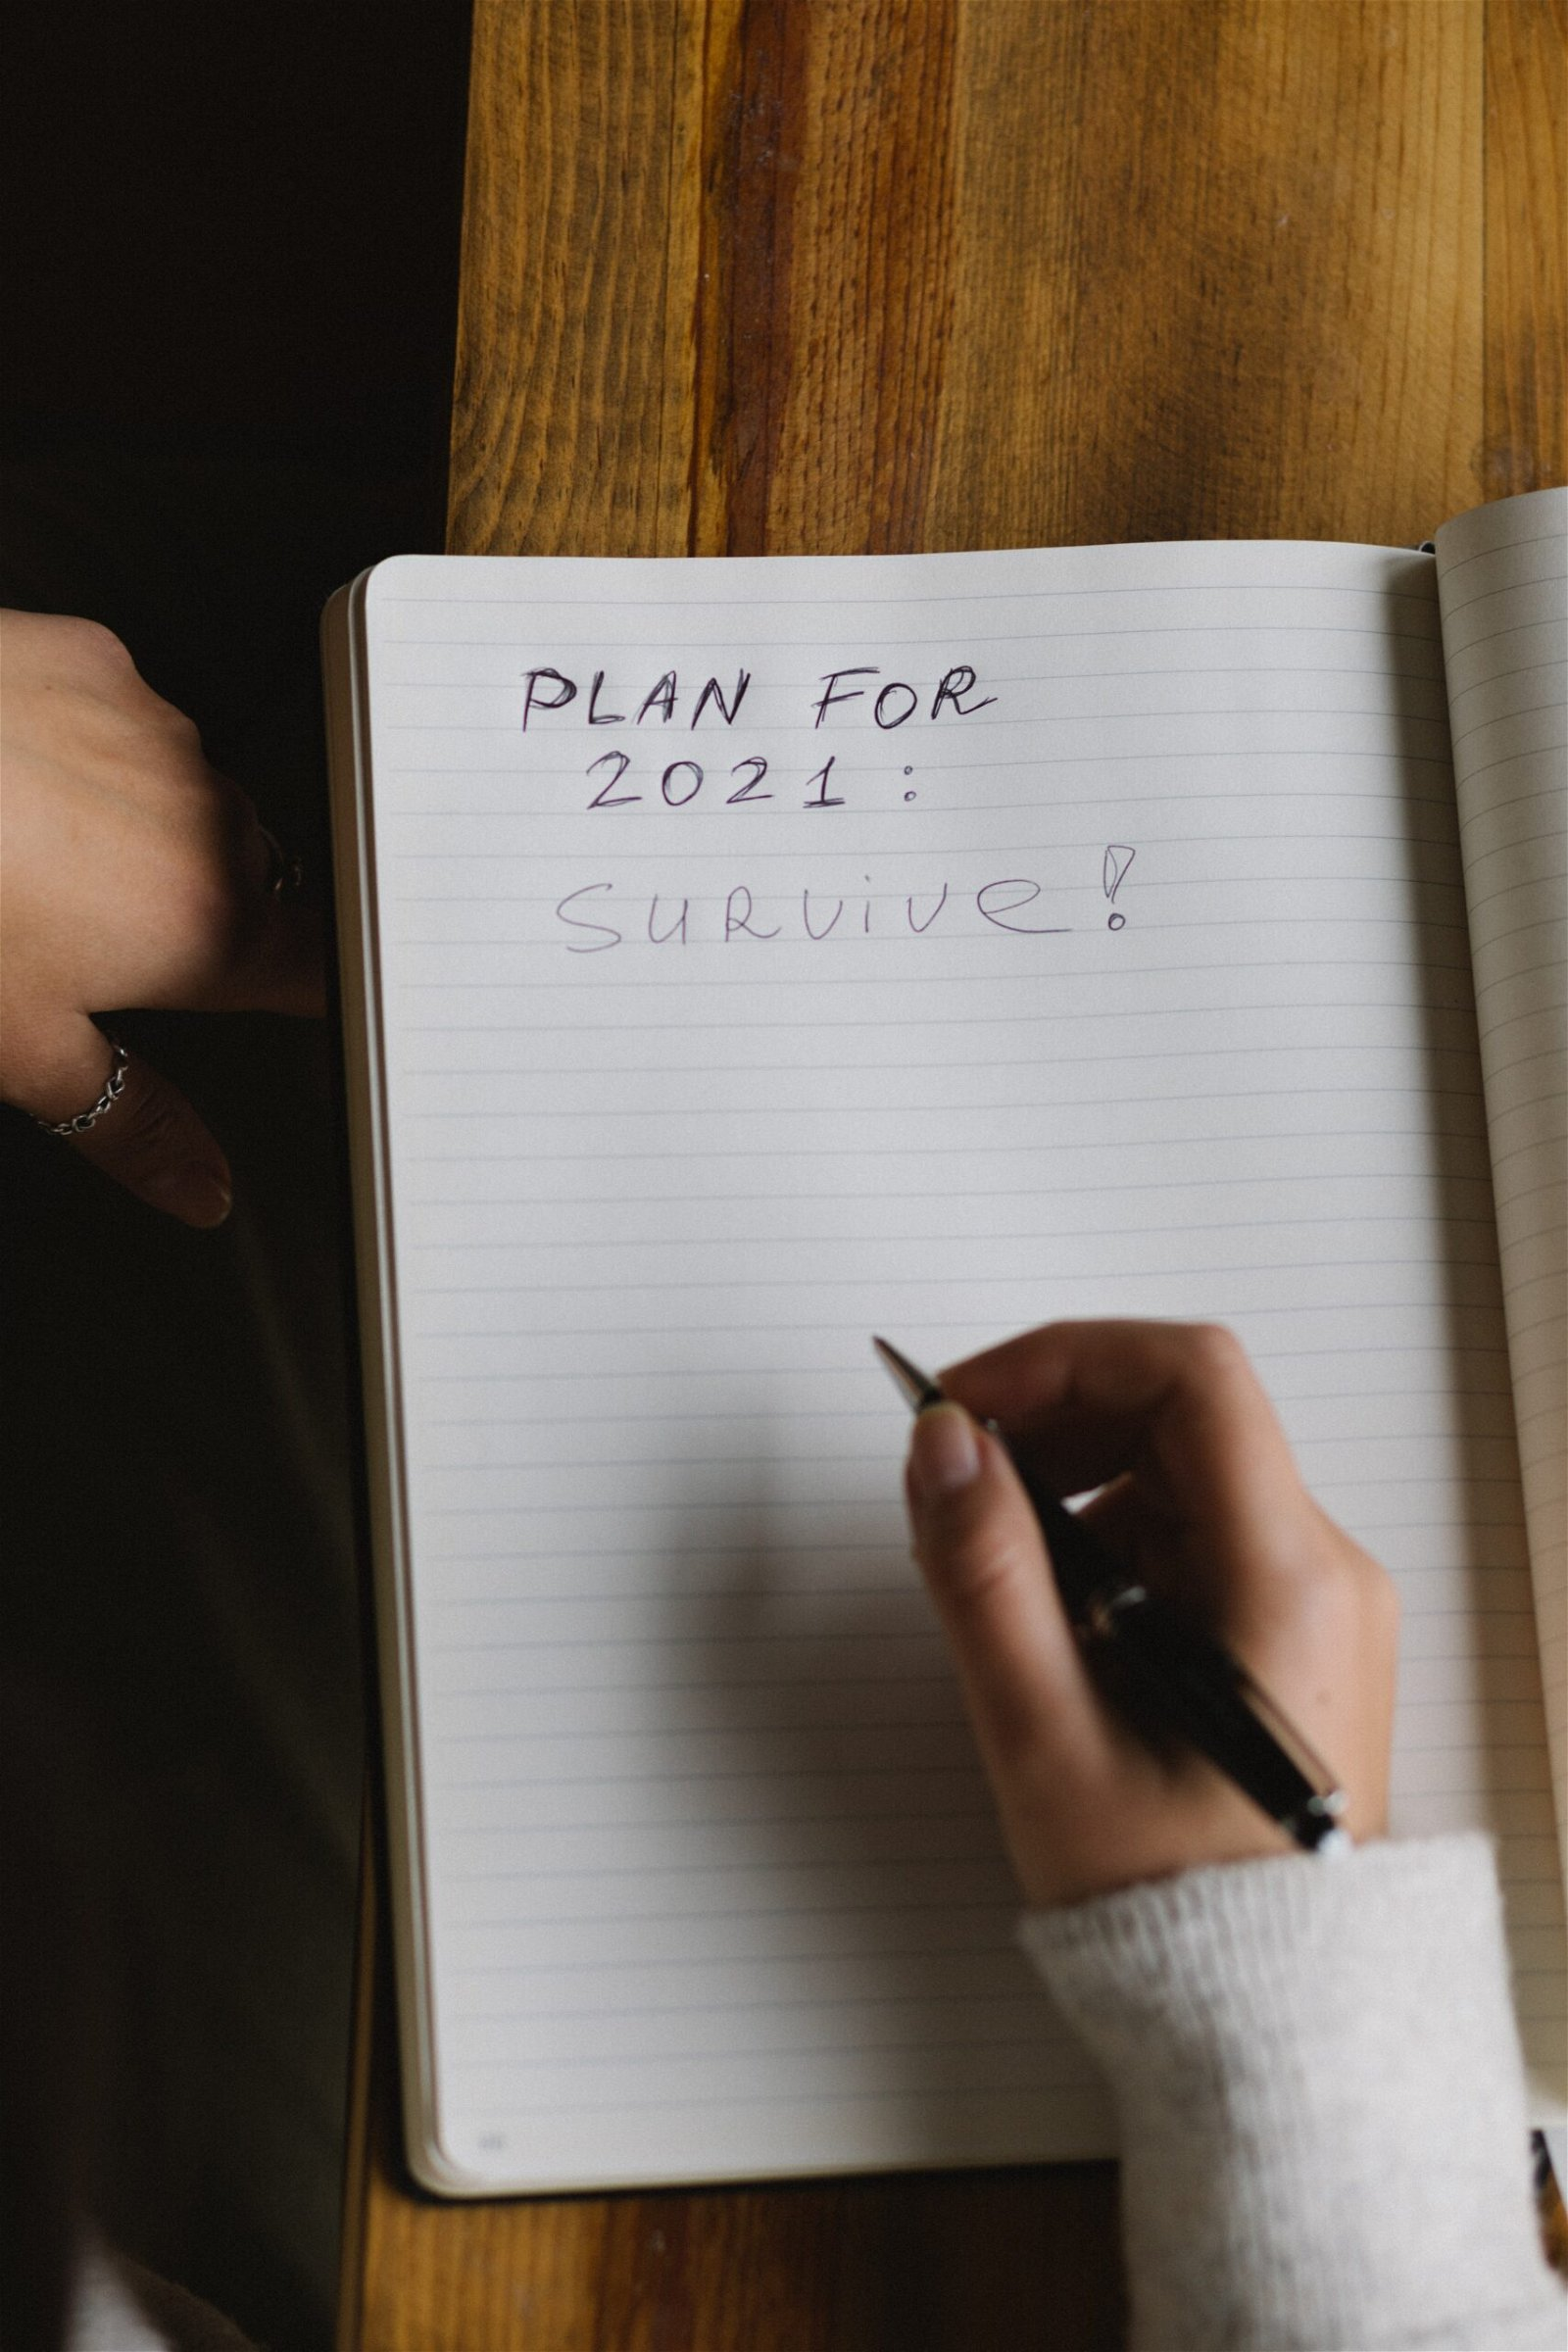 plan for 2021: survive